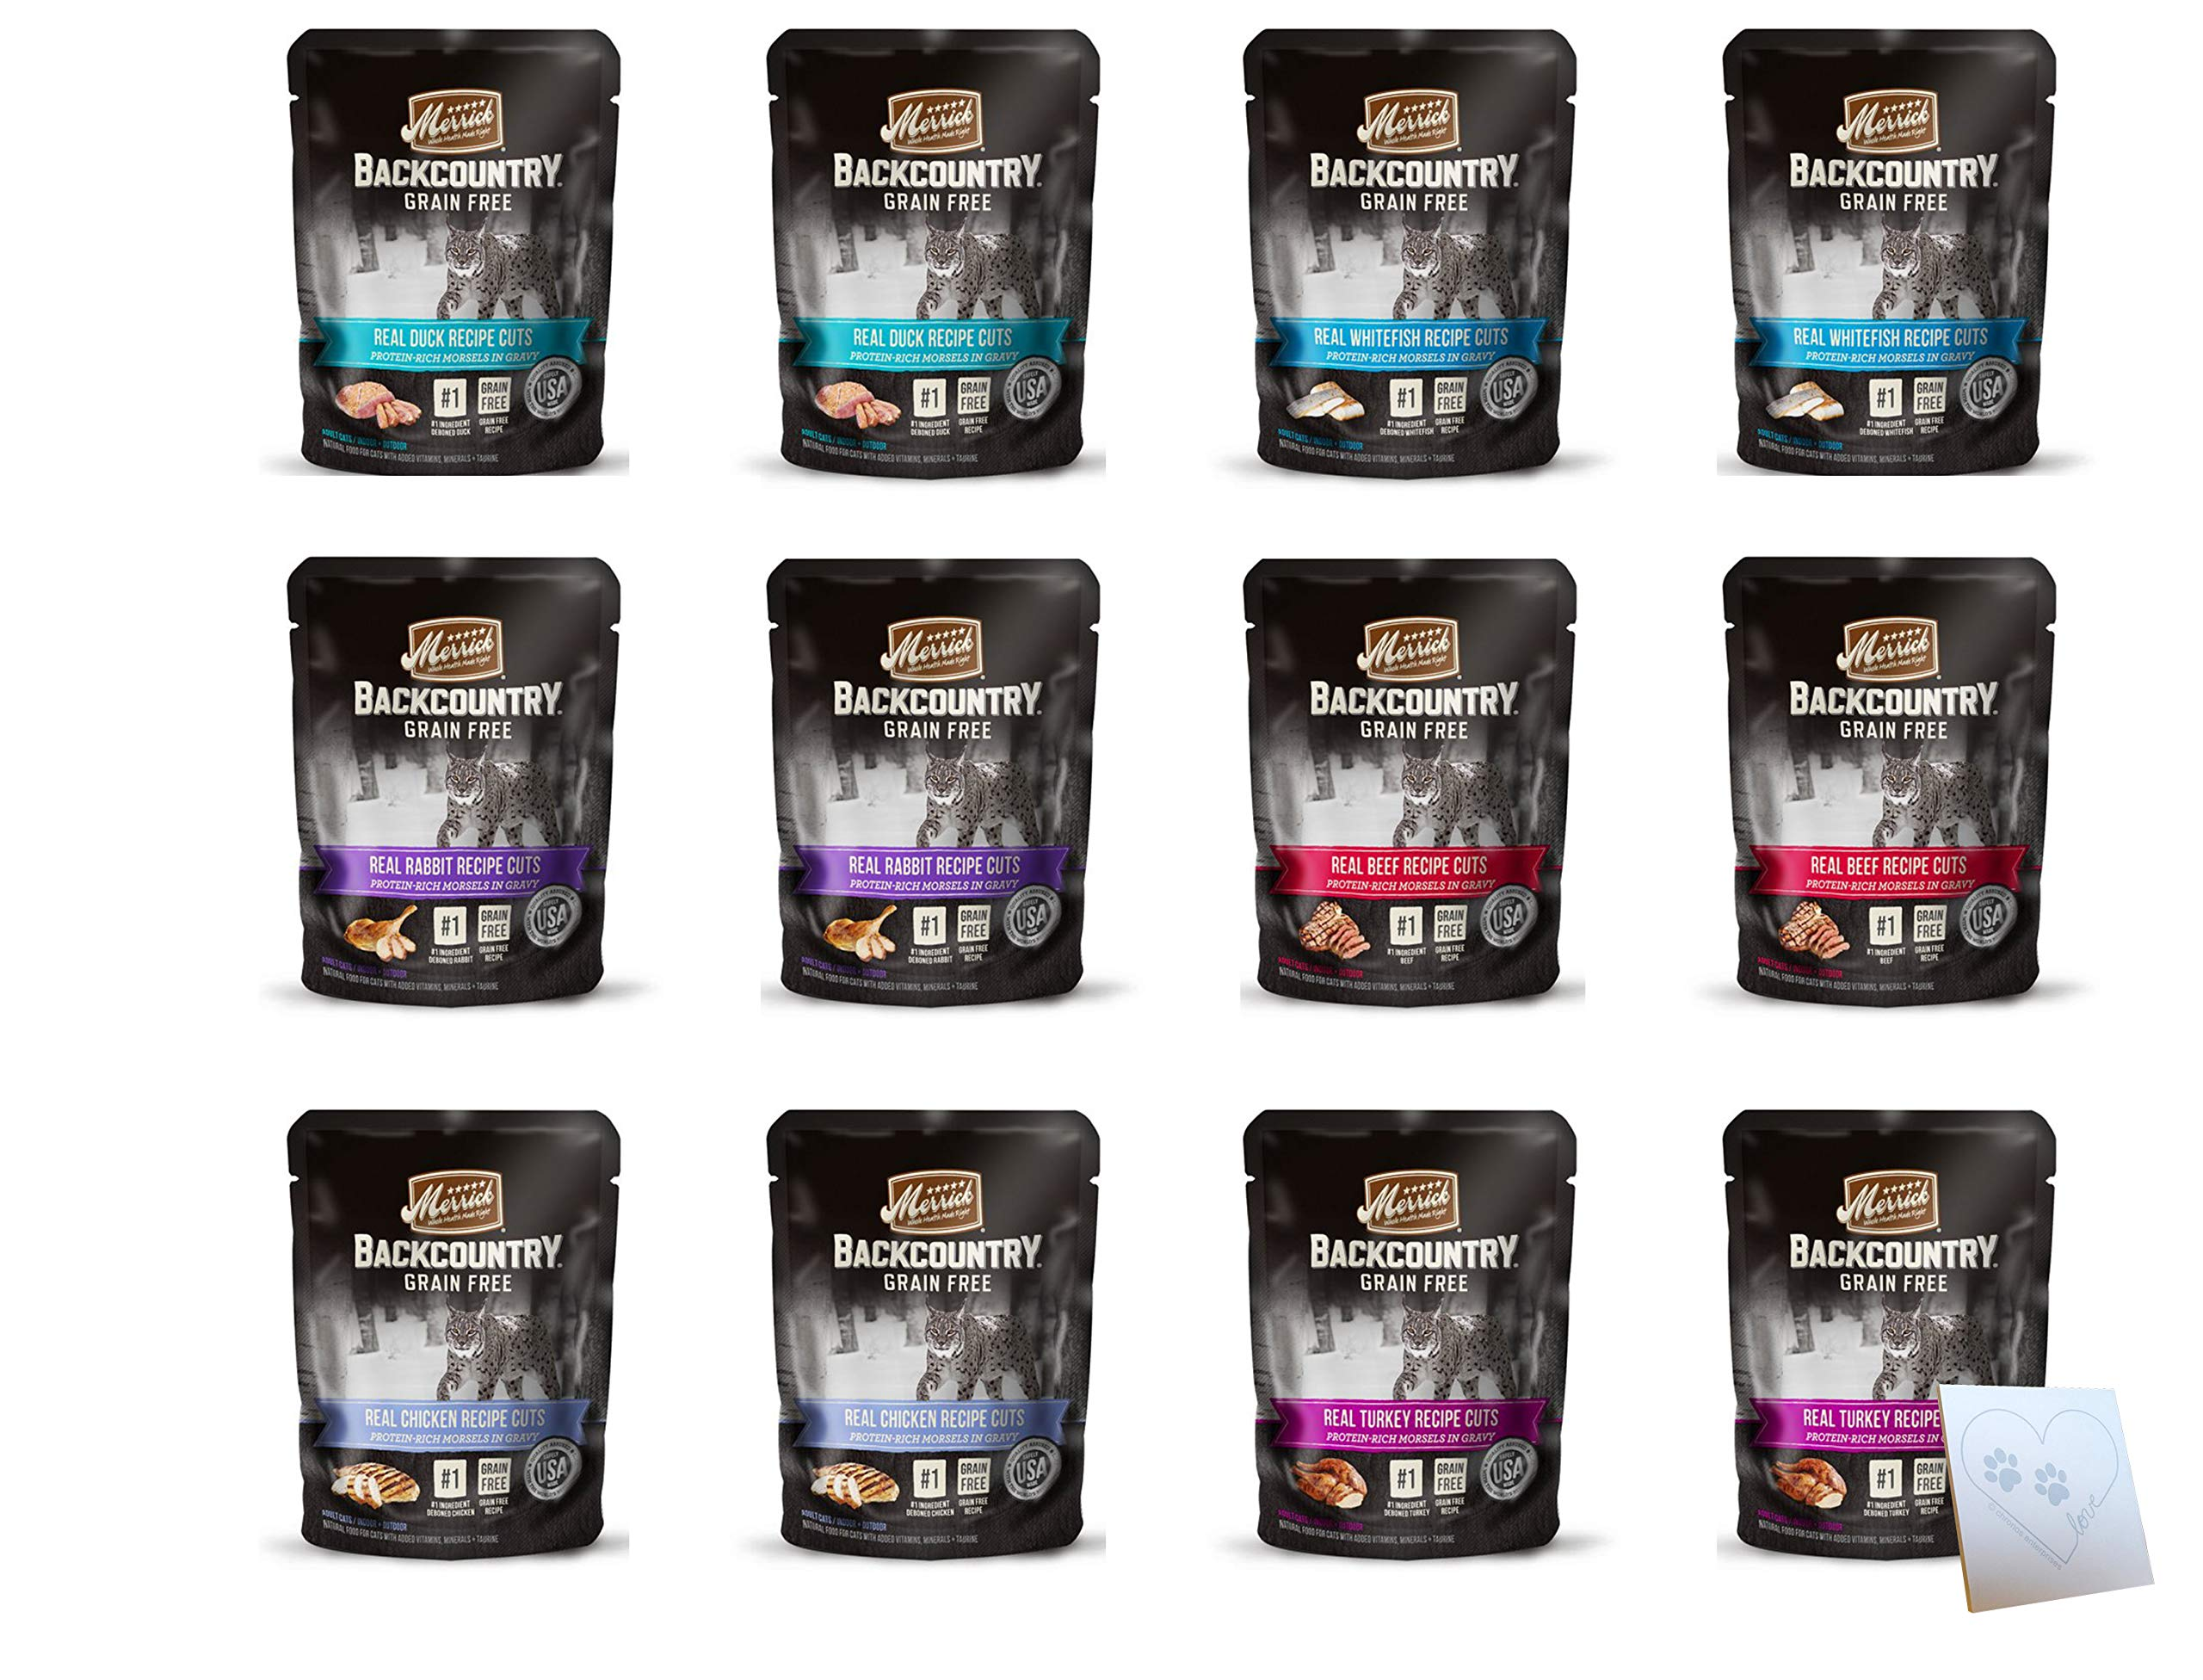 Merrick Backcountry Huge Grain Free Wet Cat Food Pouches - All 6 Flavors: Beef, Chicken, Whitefish, Turkey, Duck, and Rabbit - Plus Pet Paws Notepad (3oz Each, 12 Pouches Total) by Merrick